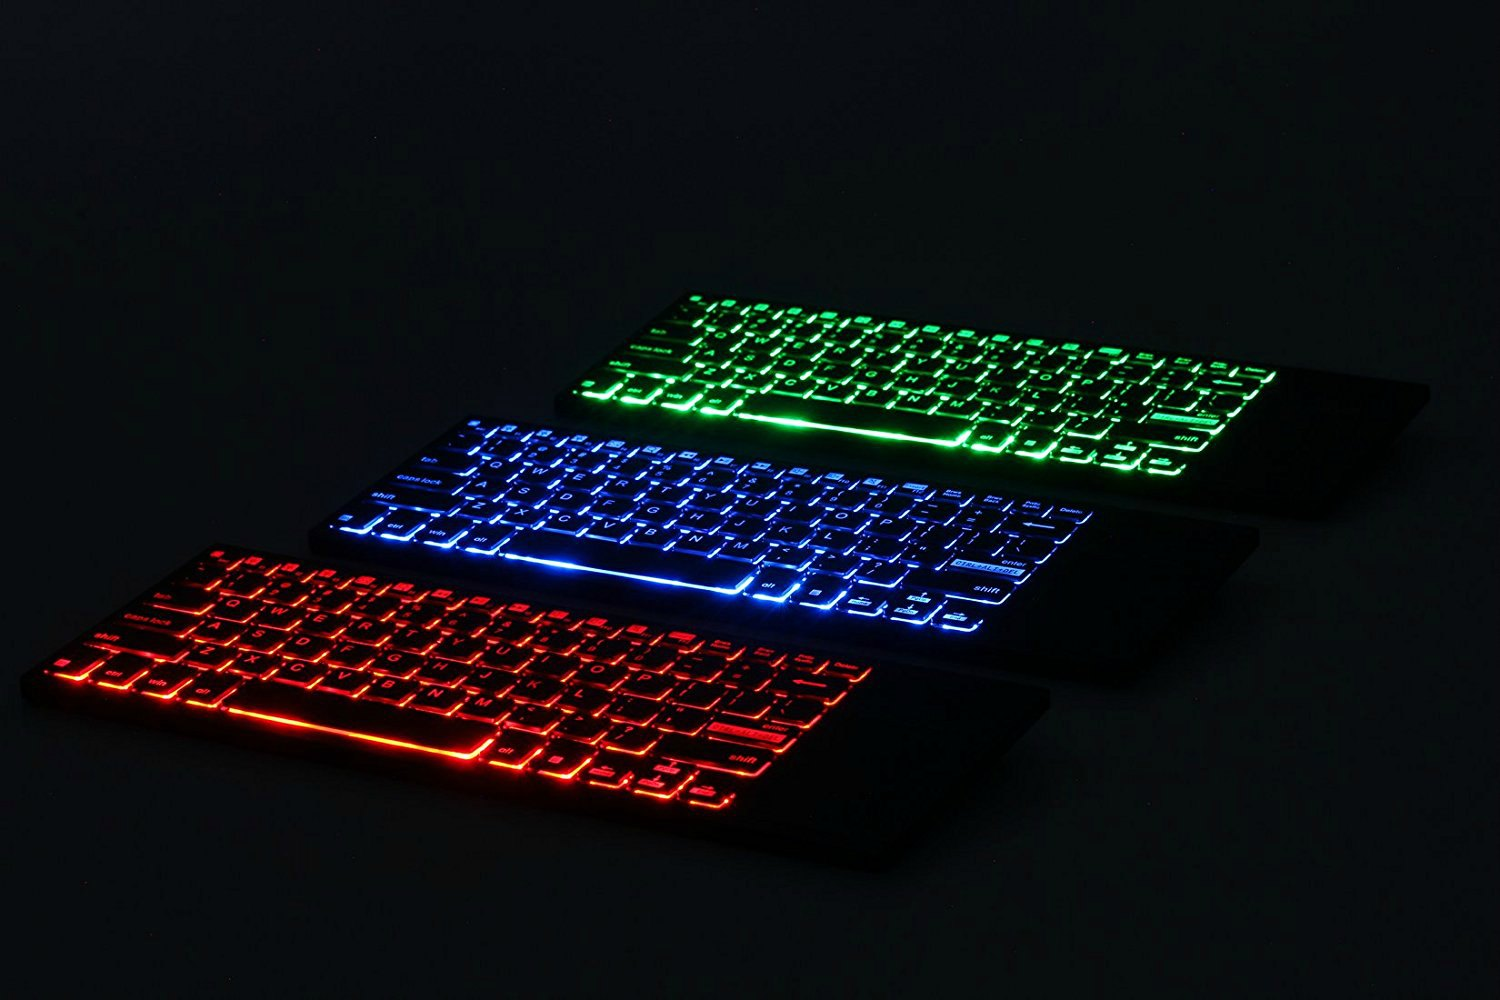 Ipazzport Wireless Keyboard Has Multicolored Illumination